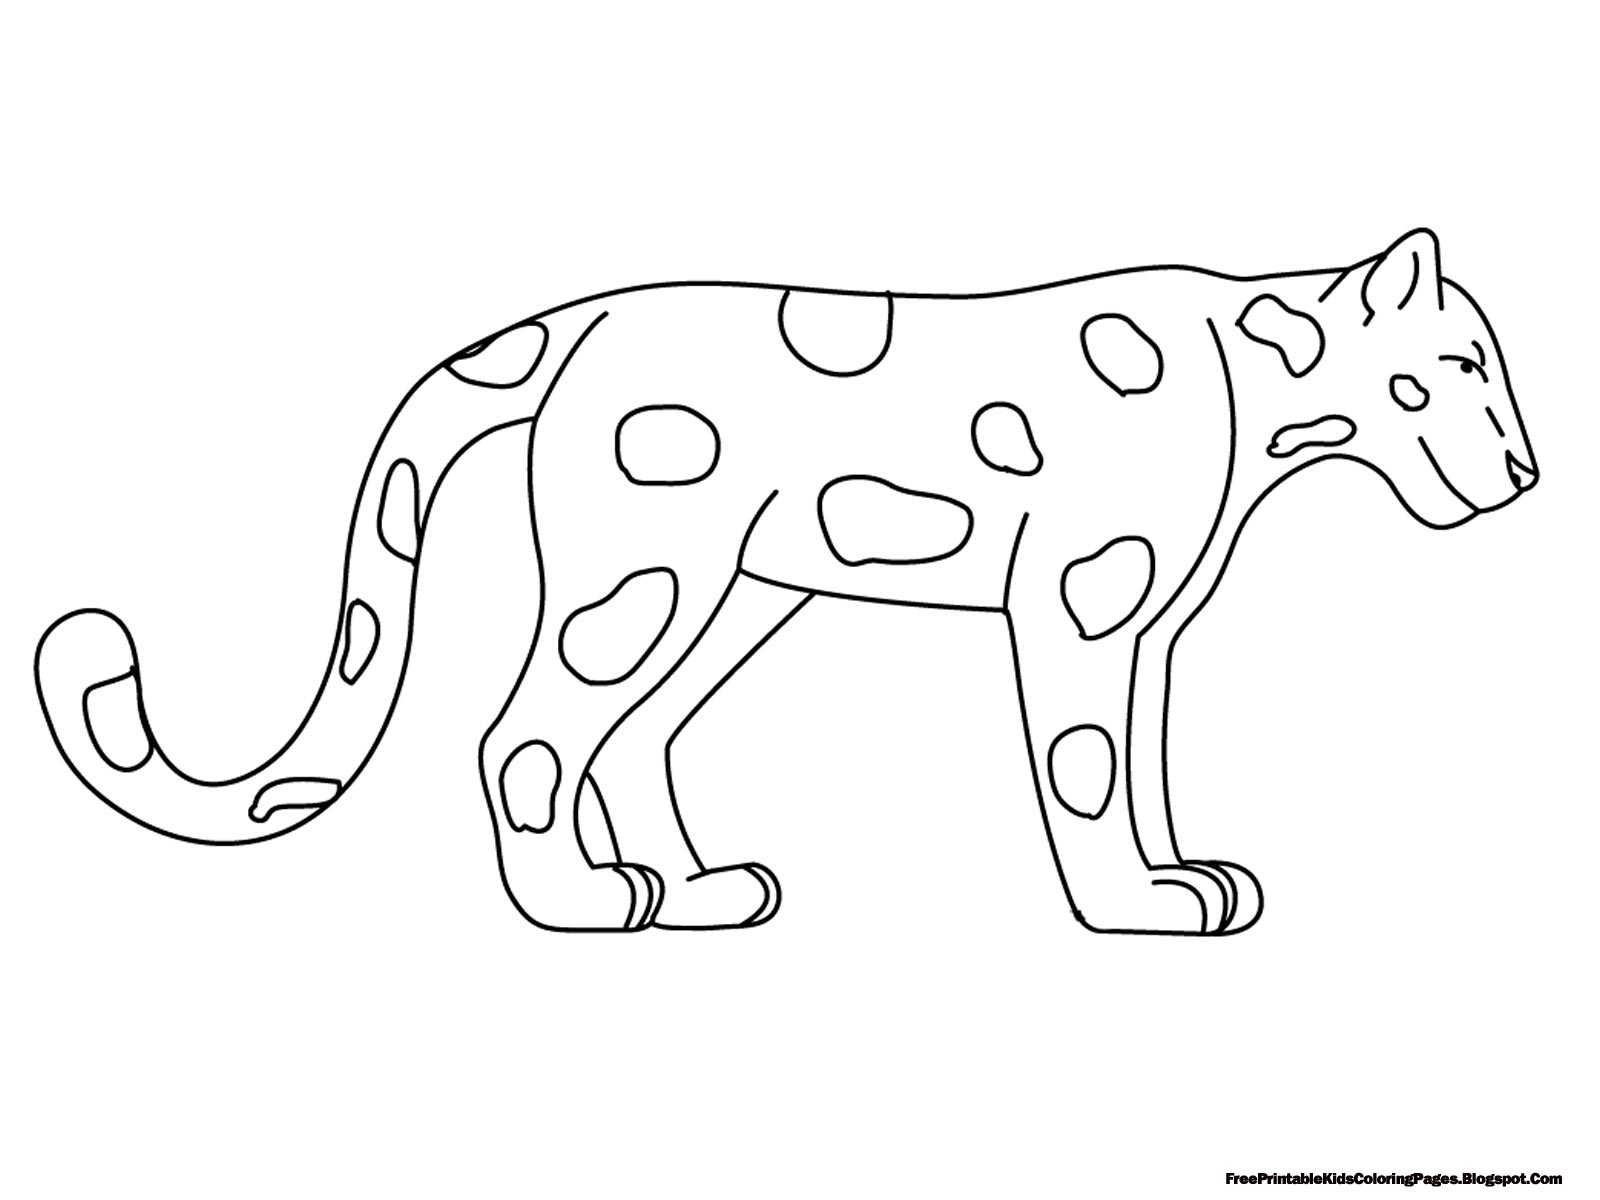 Jaguar Coloring Pages - Free Printable Kids Coloring Pages